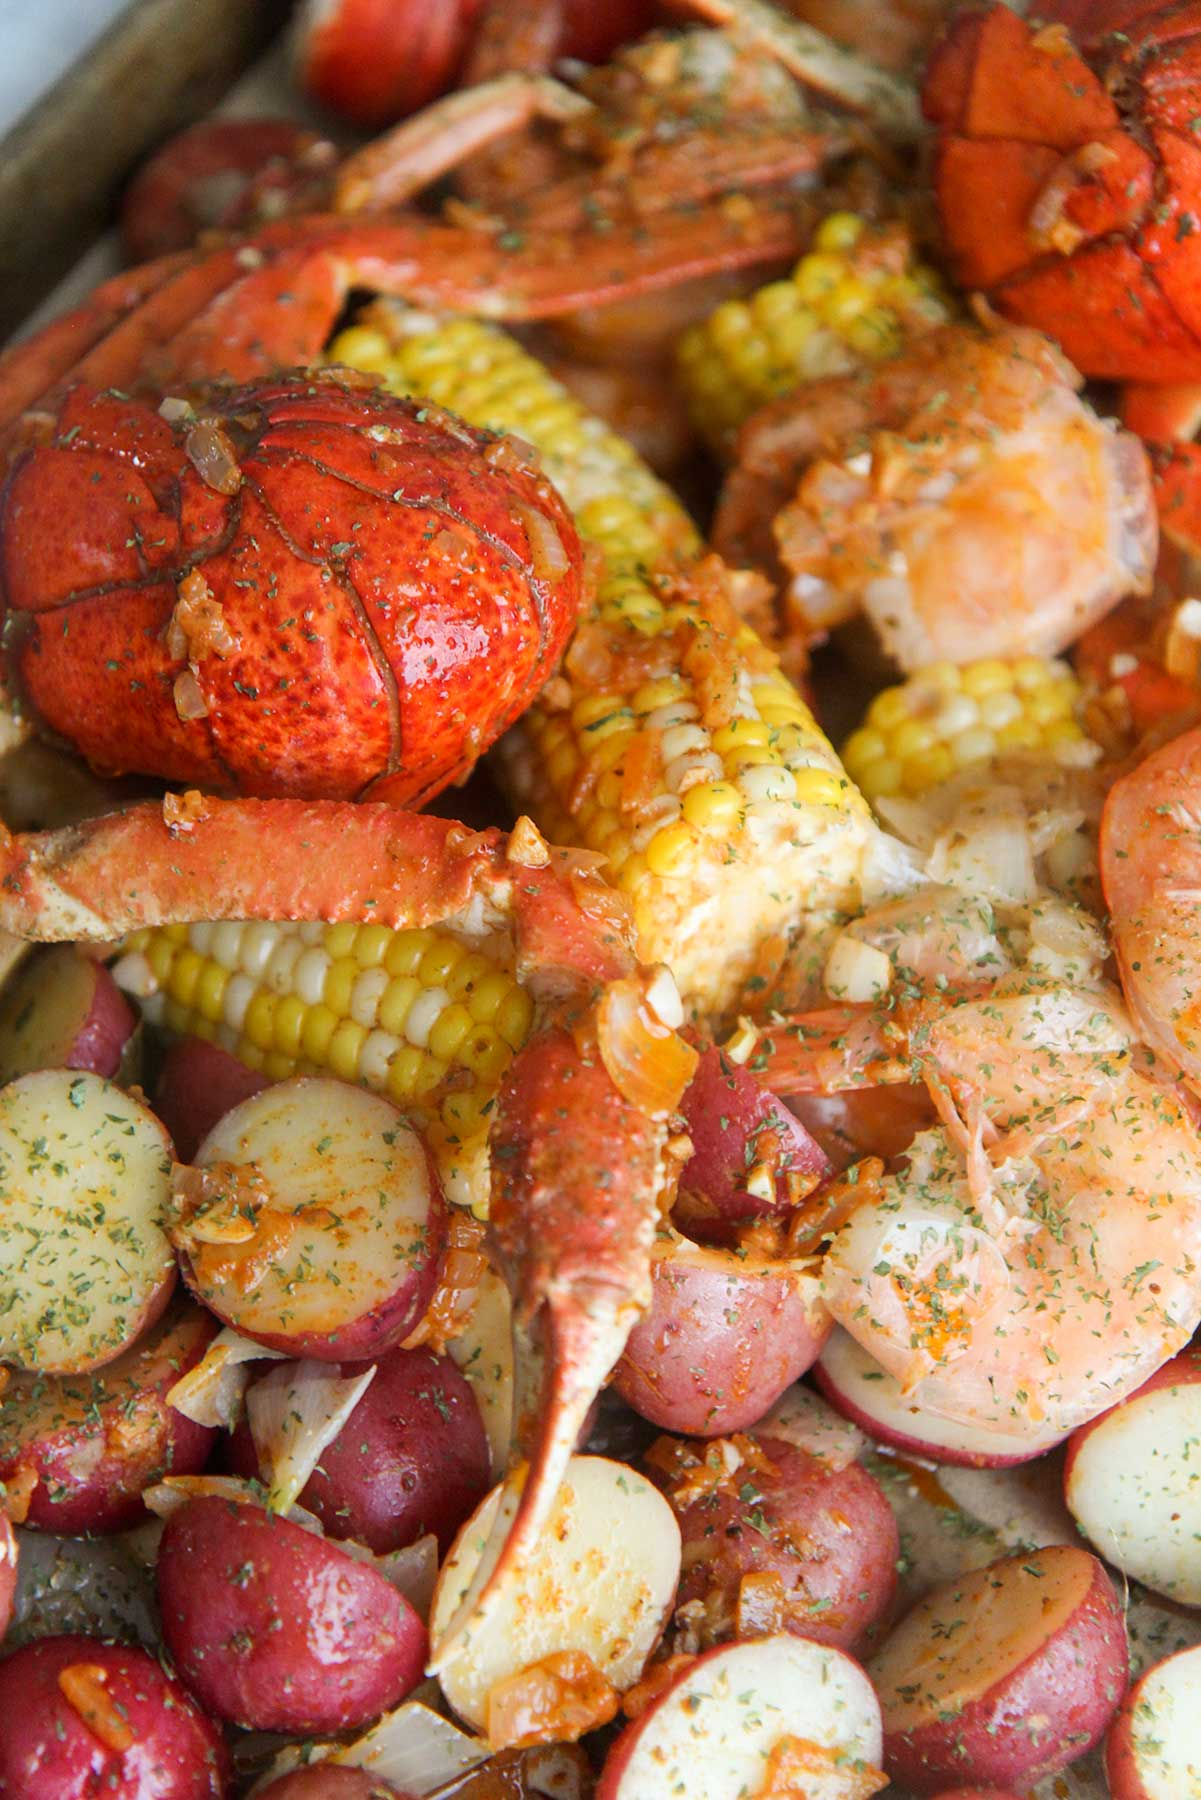 cooked lobster tails, corn, potatoes, sausage, crab legs, and shrimp, with sauce and parsley on top.